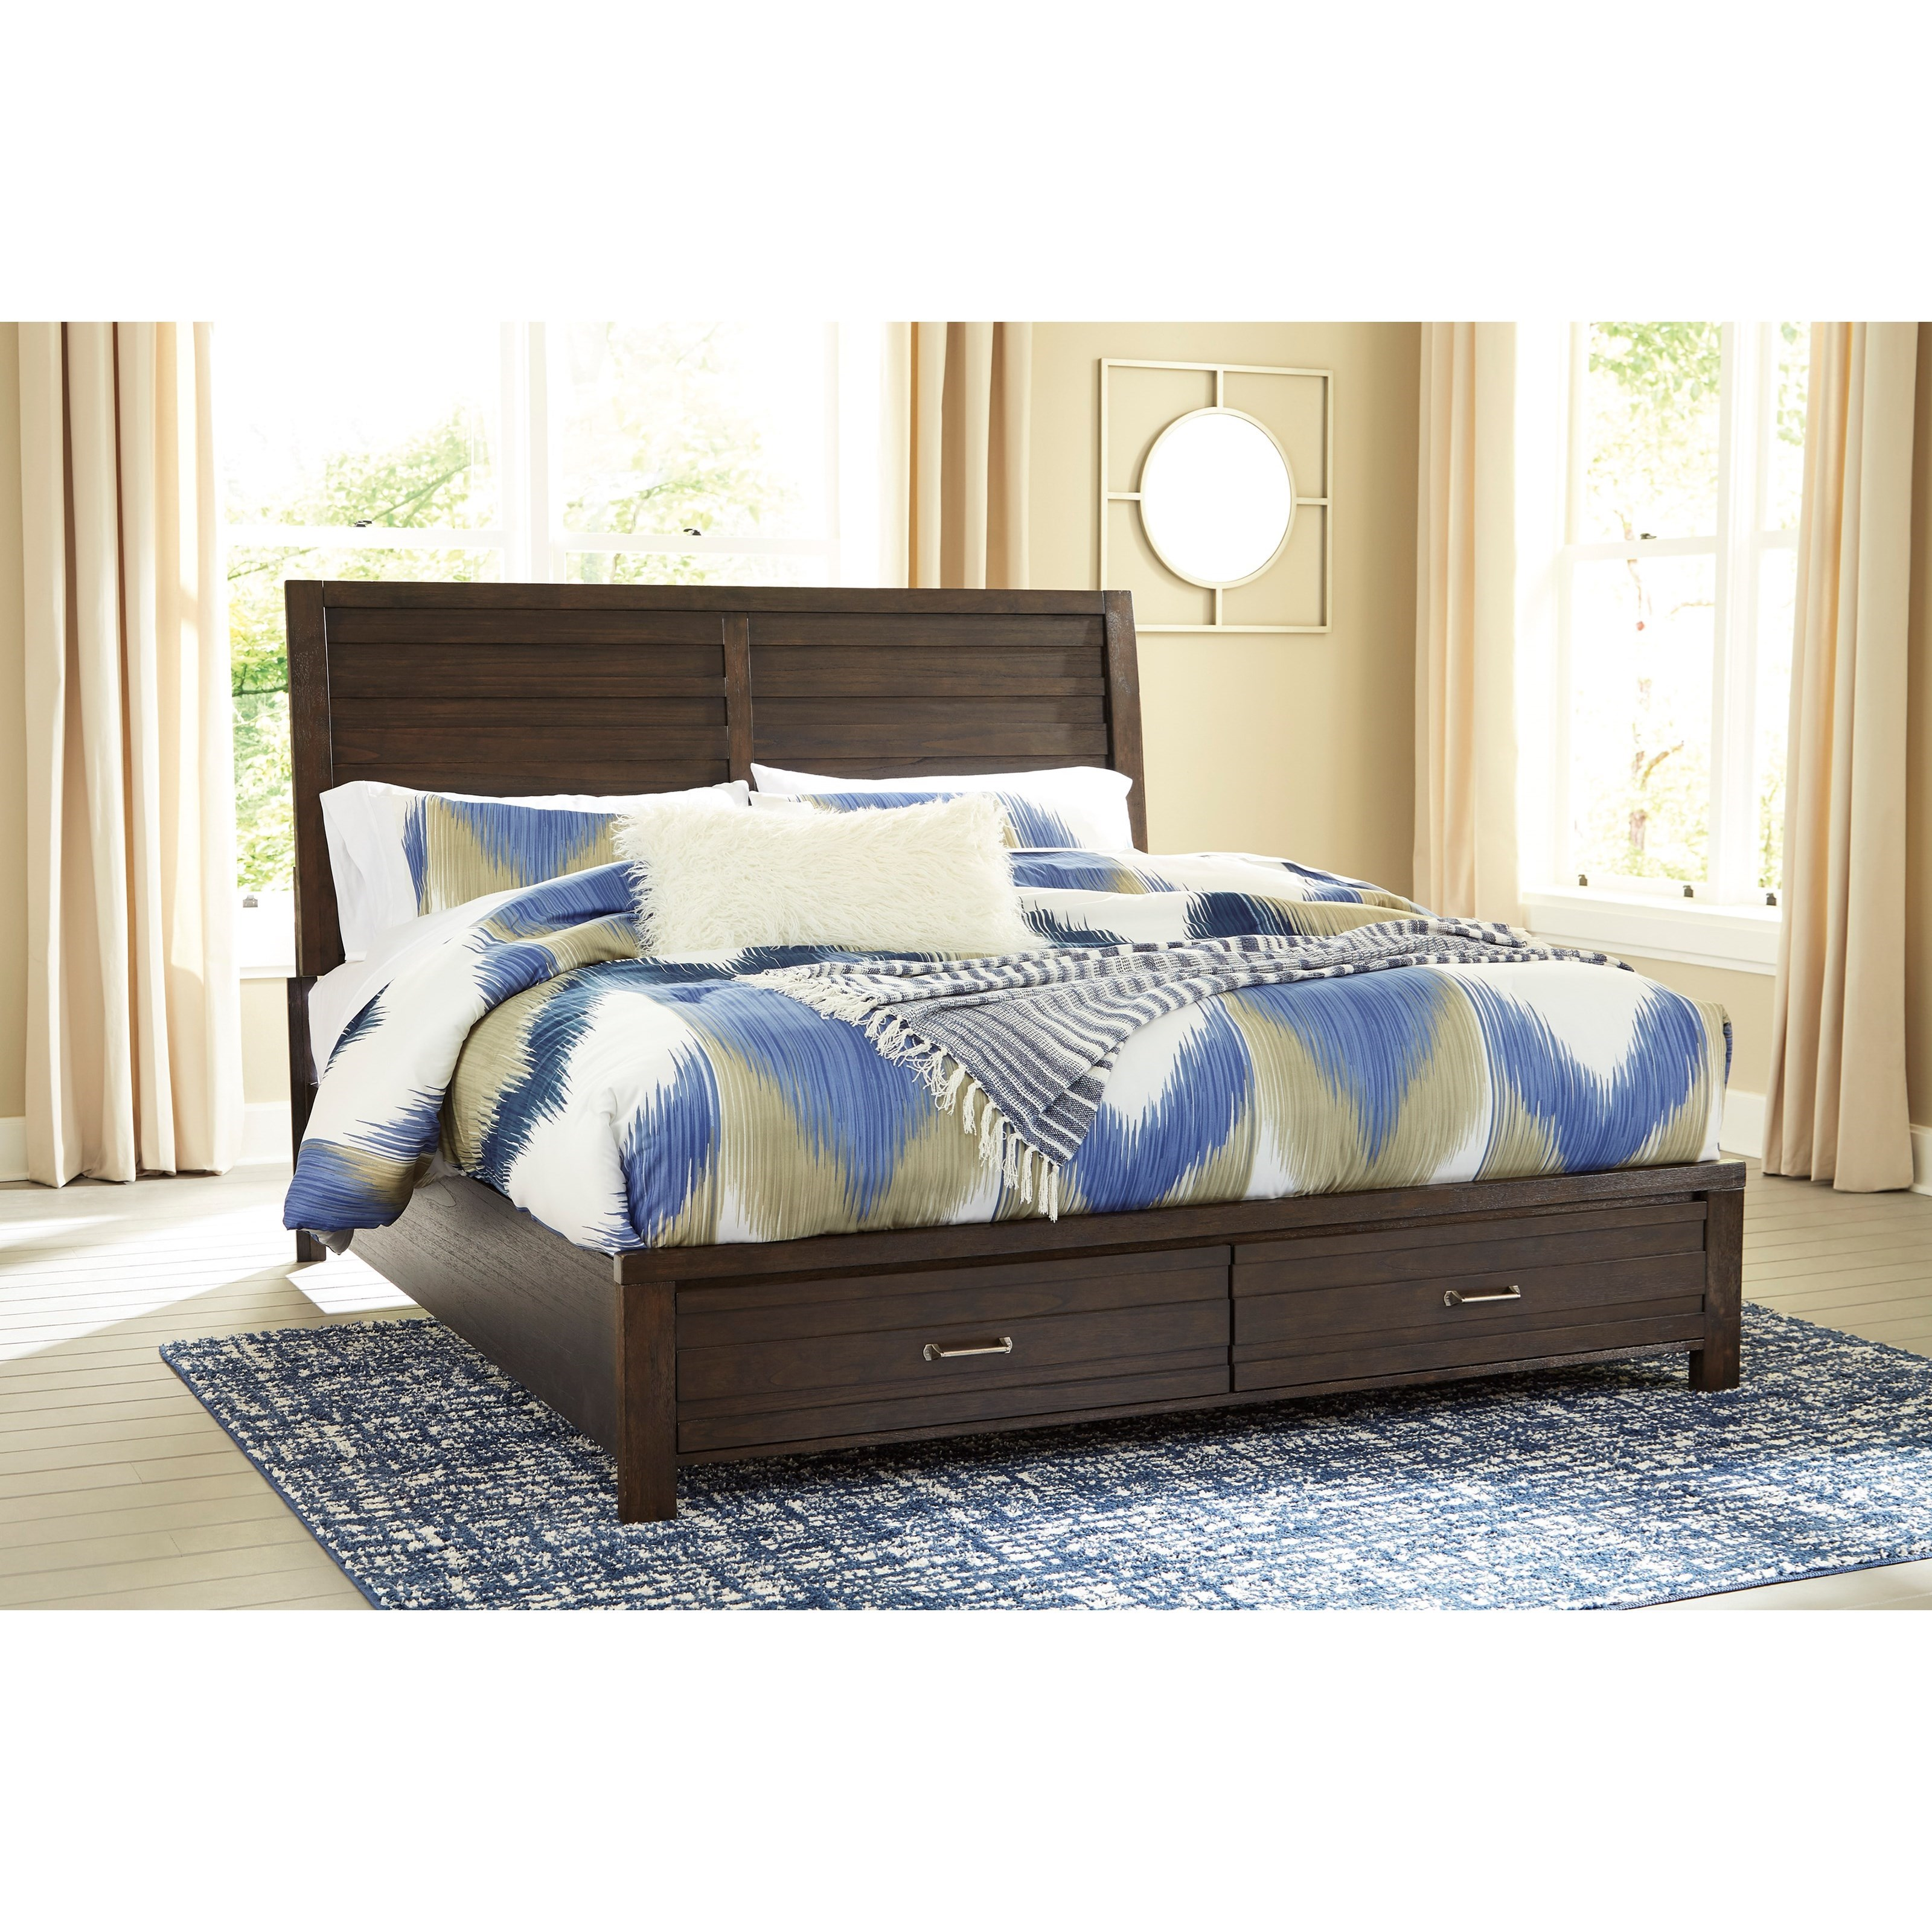 B705 58 Ck Ashley Furniture California King Sleigh Bed: Signature Design By Ashley Darbry King Storage Bed With 2